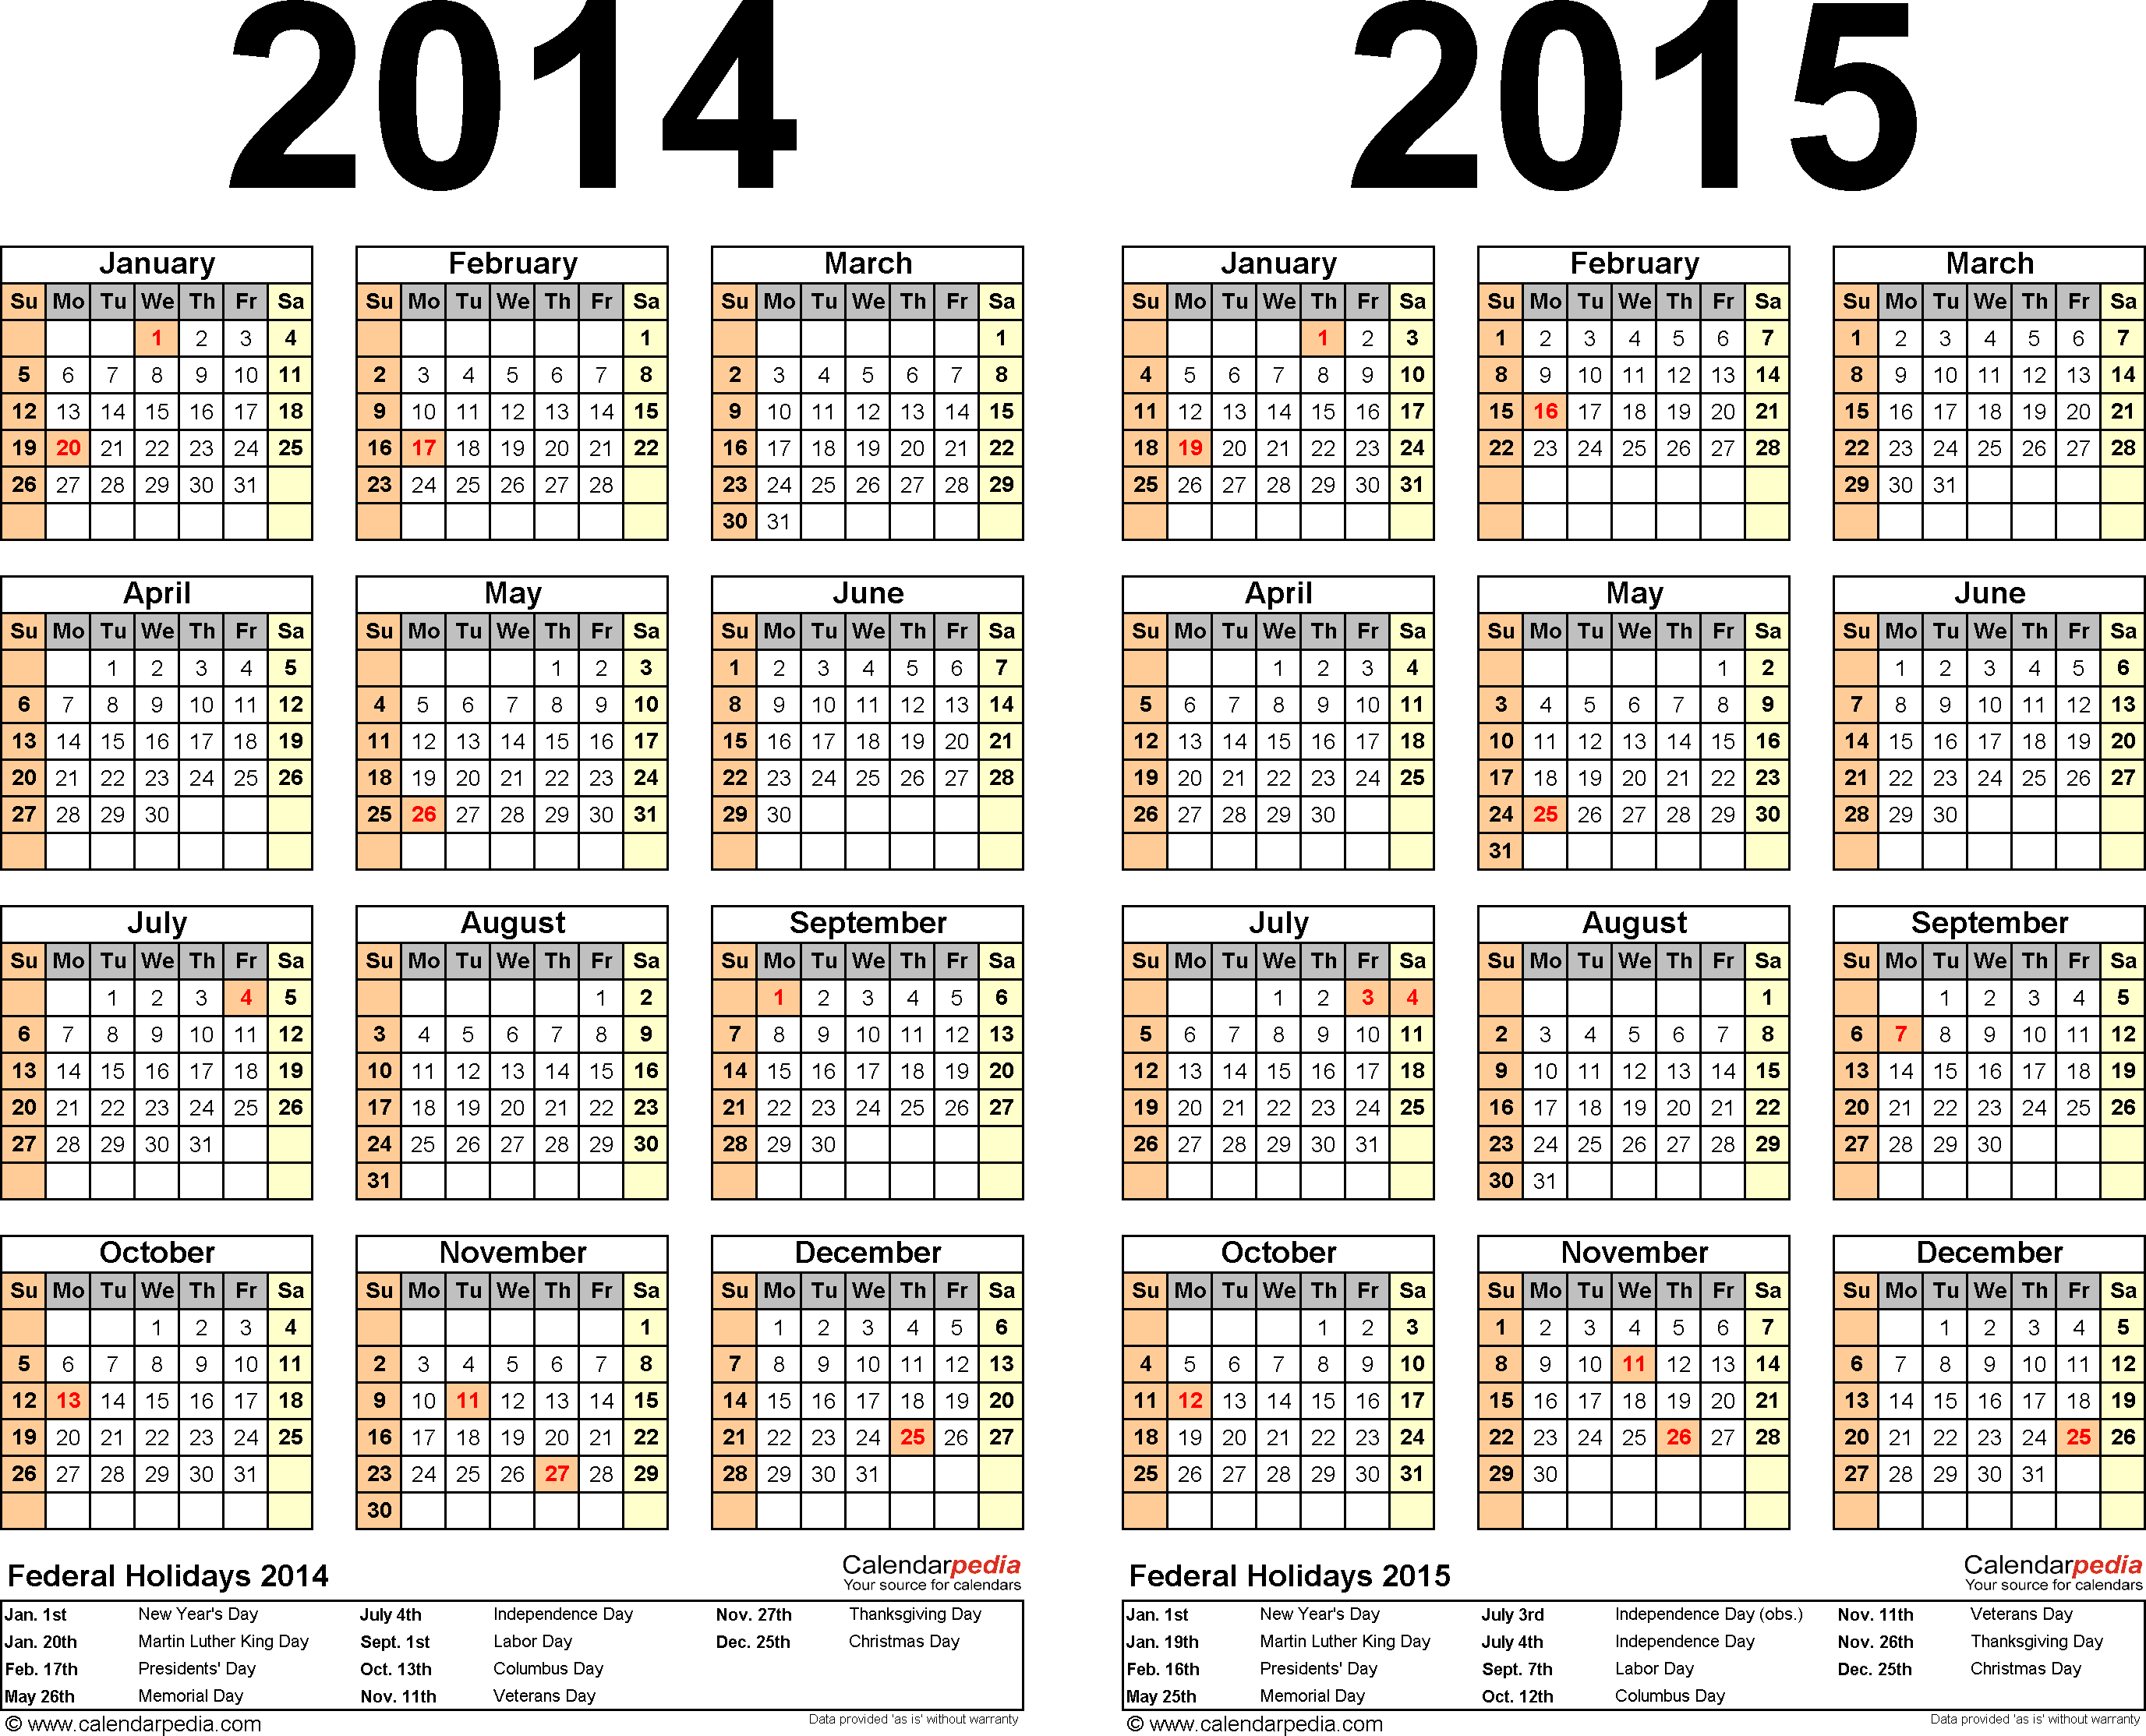 split year calendars 2014/15 (July 2014 to June 2015)